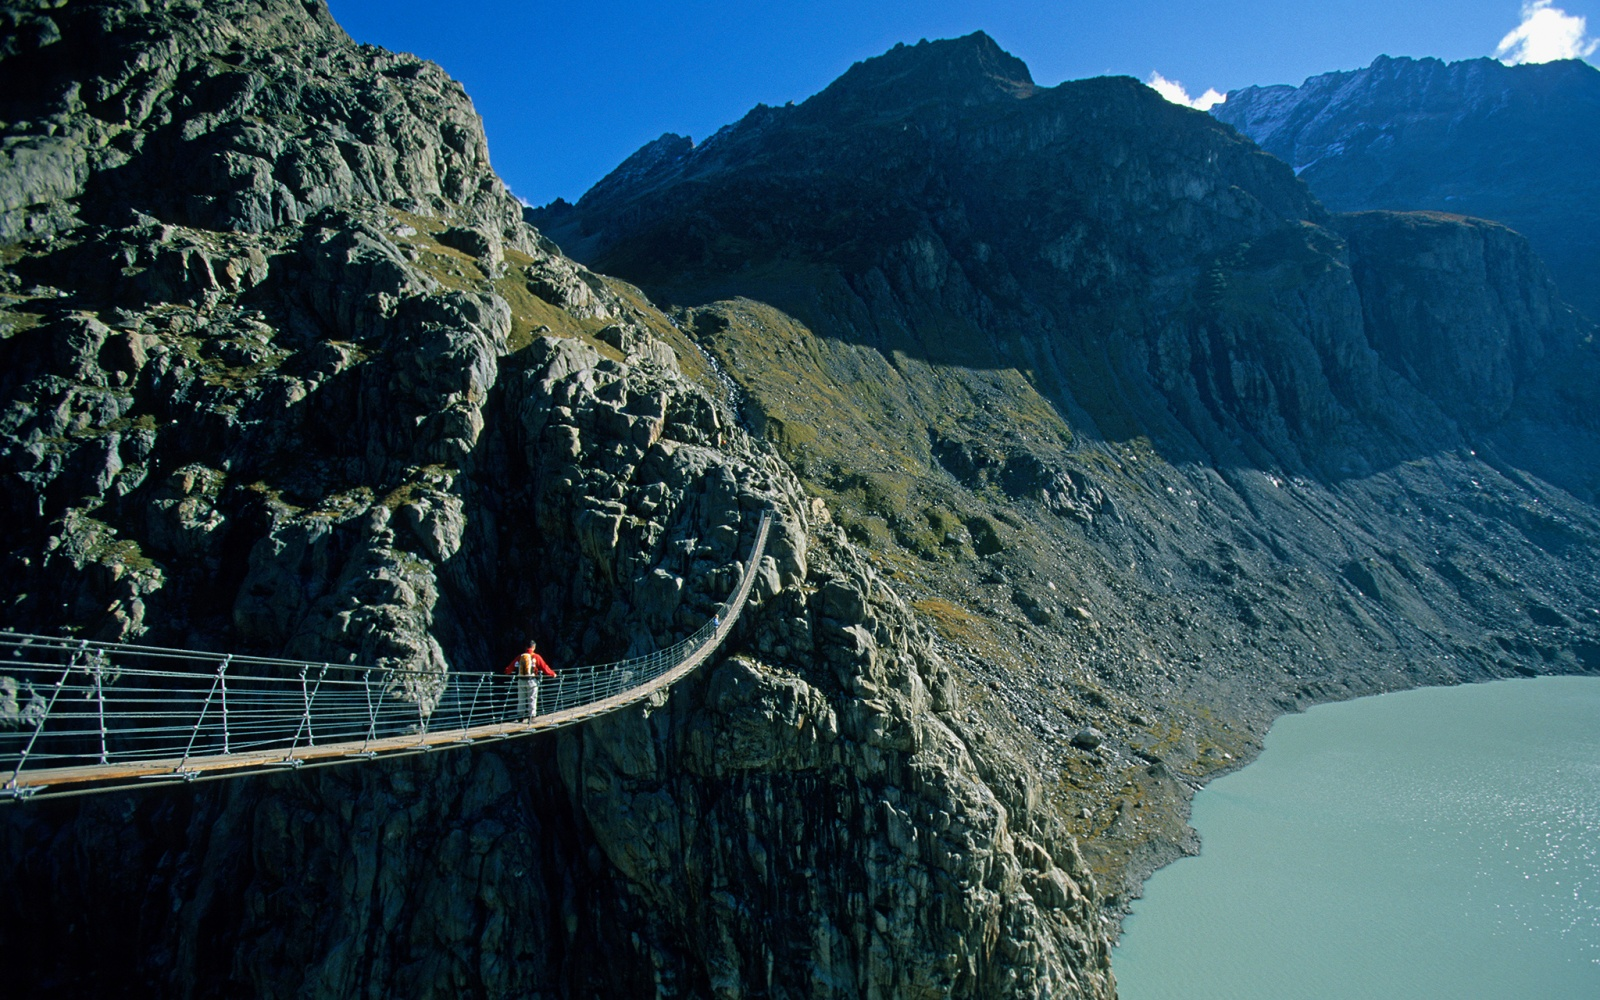 Trift Suspension Bridge, Switzerland